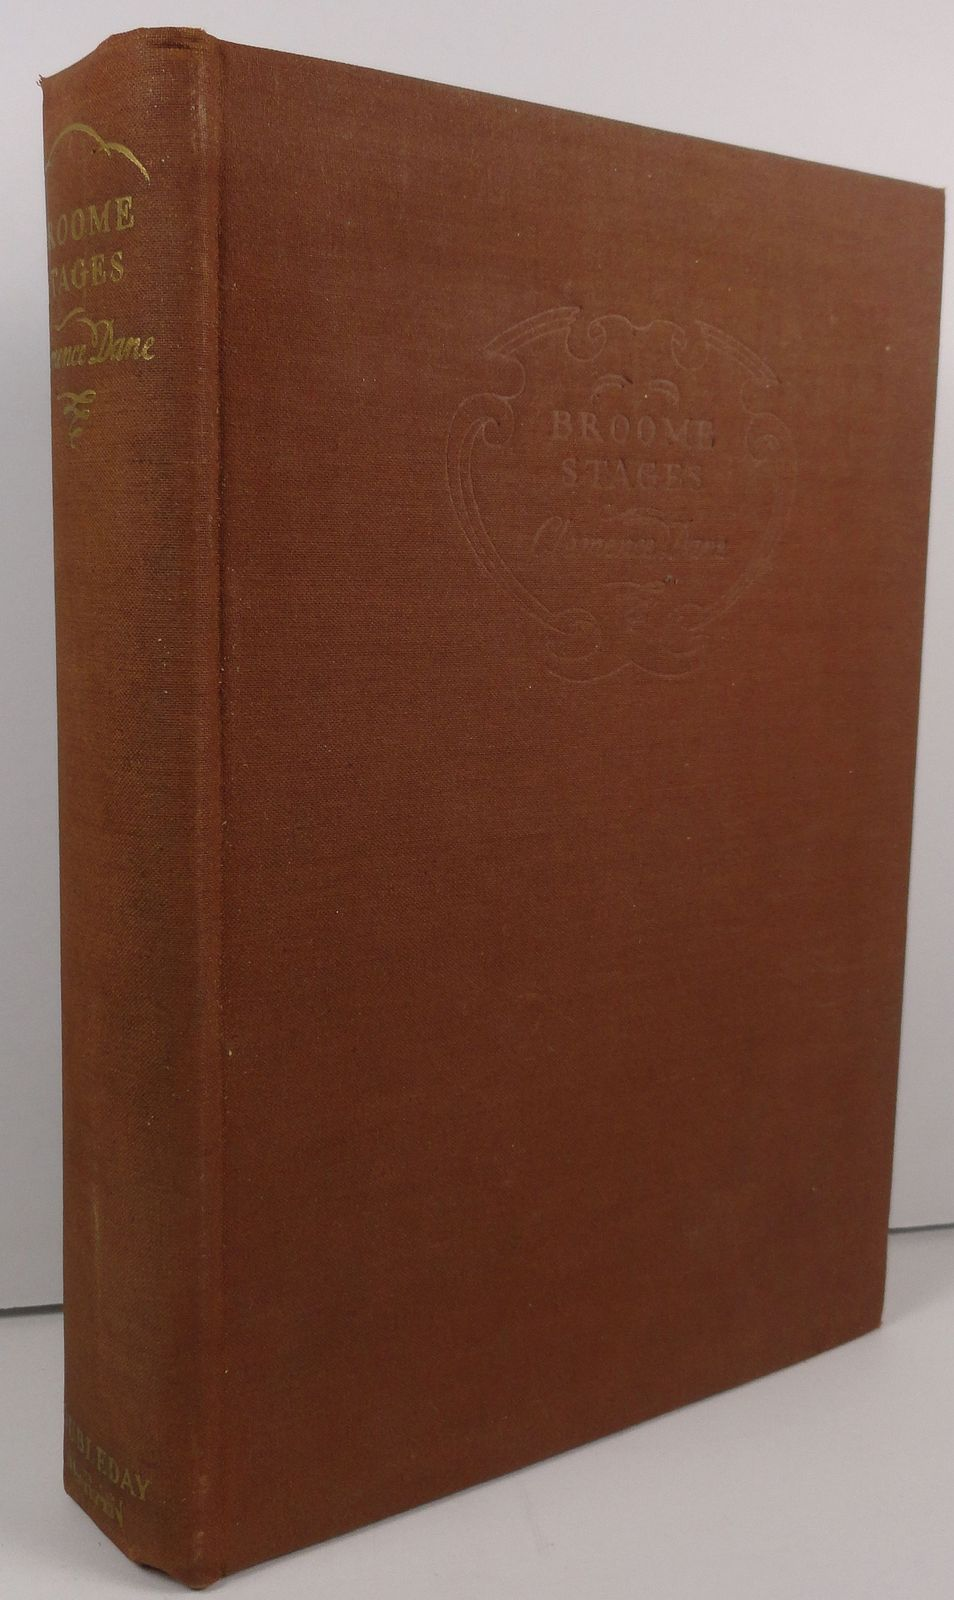 Broome Stages by Clemence Dane 1936 Doubleday, Doran